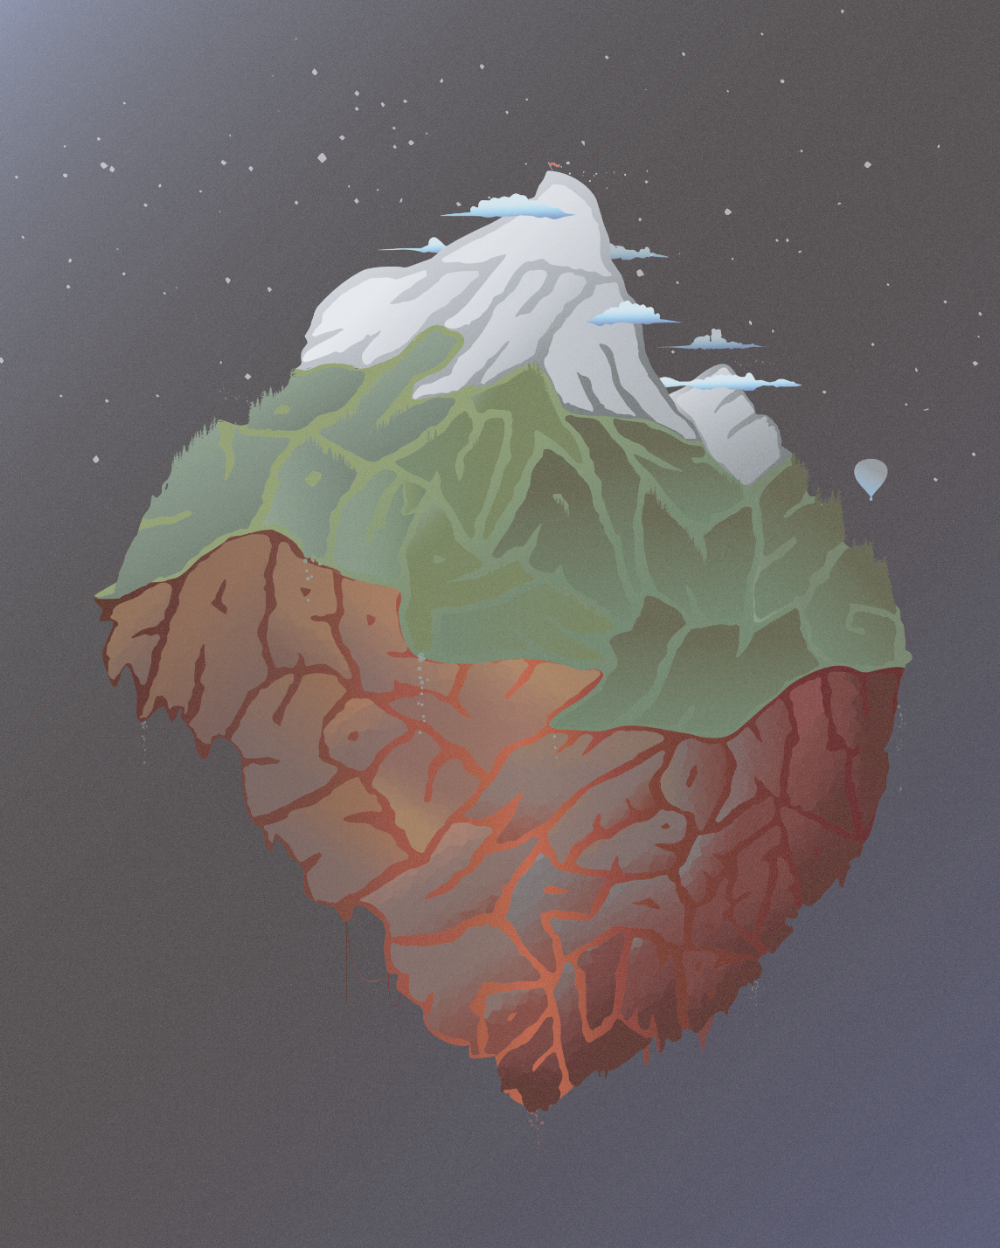 "'These Mountains' by TEKSTartist. Created by warping/twisting the words from the quote: ""These mountains you're carrying you were only supposed to climb"""